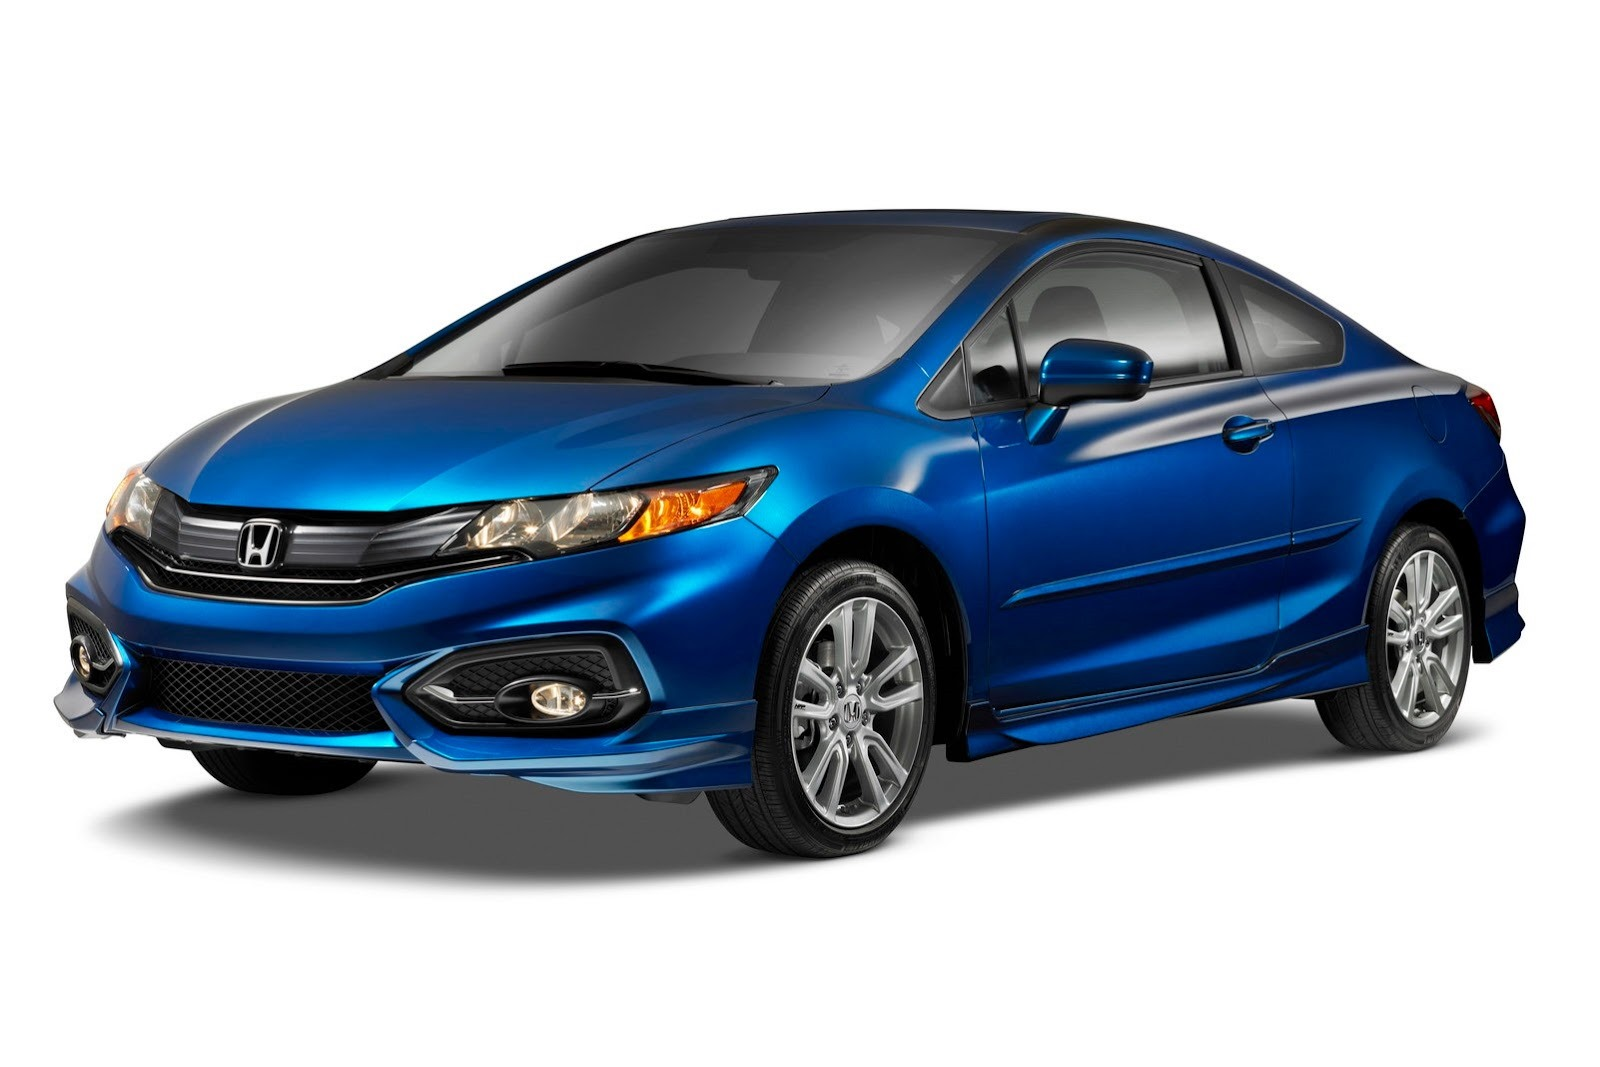 2014 honda civic goes on sale full pricing announced autoevolution. Black Bedroom Furniture Sets. Home Design Ideas